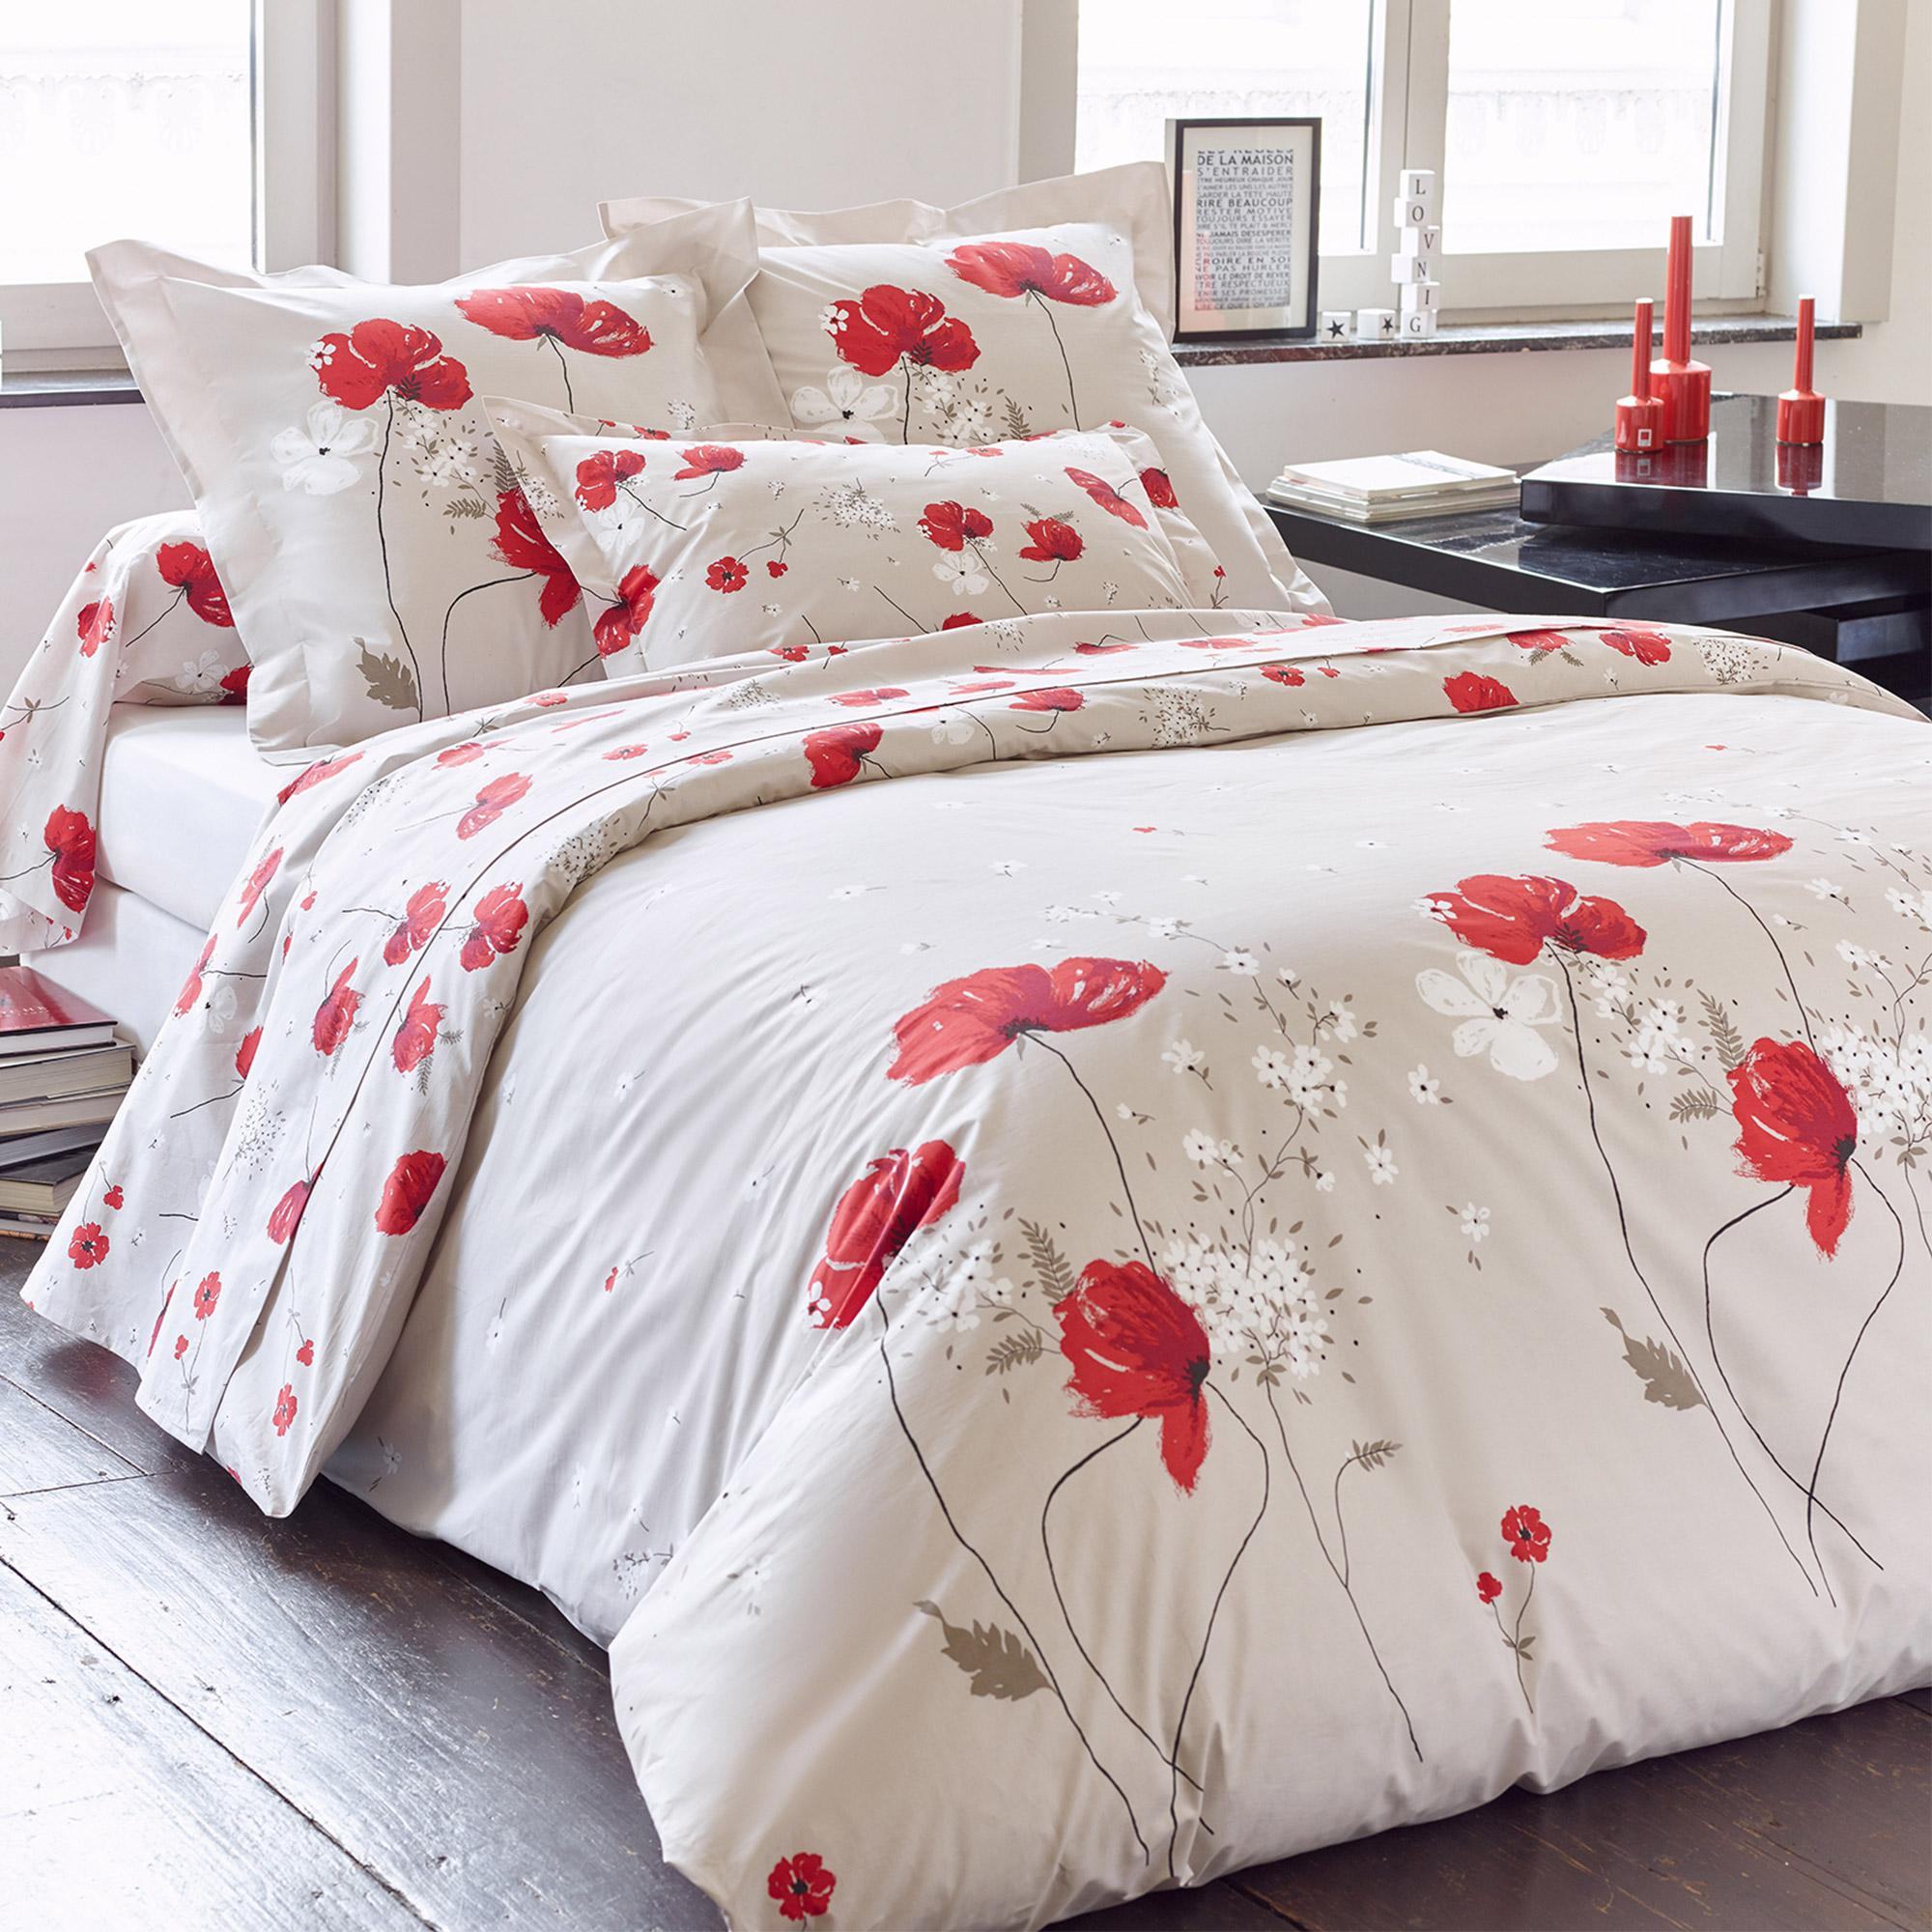 housse de couette 280x240 percale pur coton cybele flowers ecru ebay. Black Bedroom Furniture Sets. Home Design Ideas